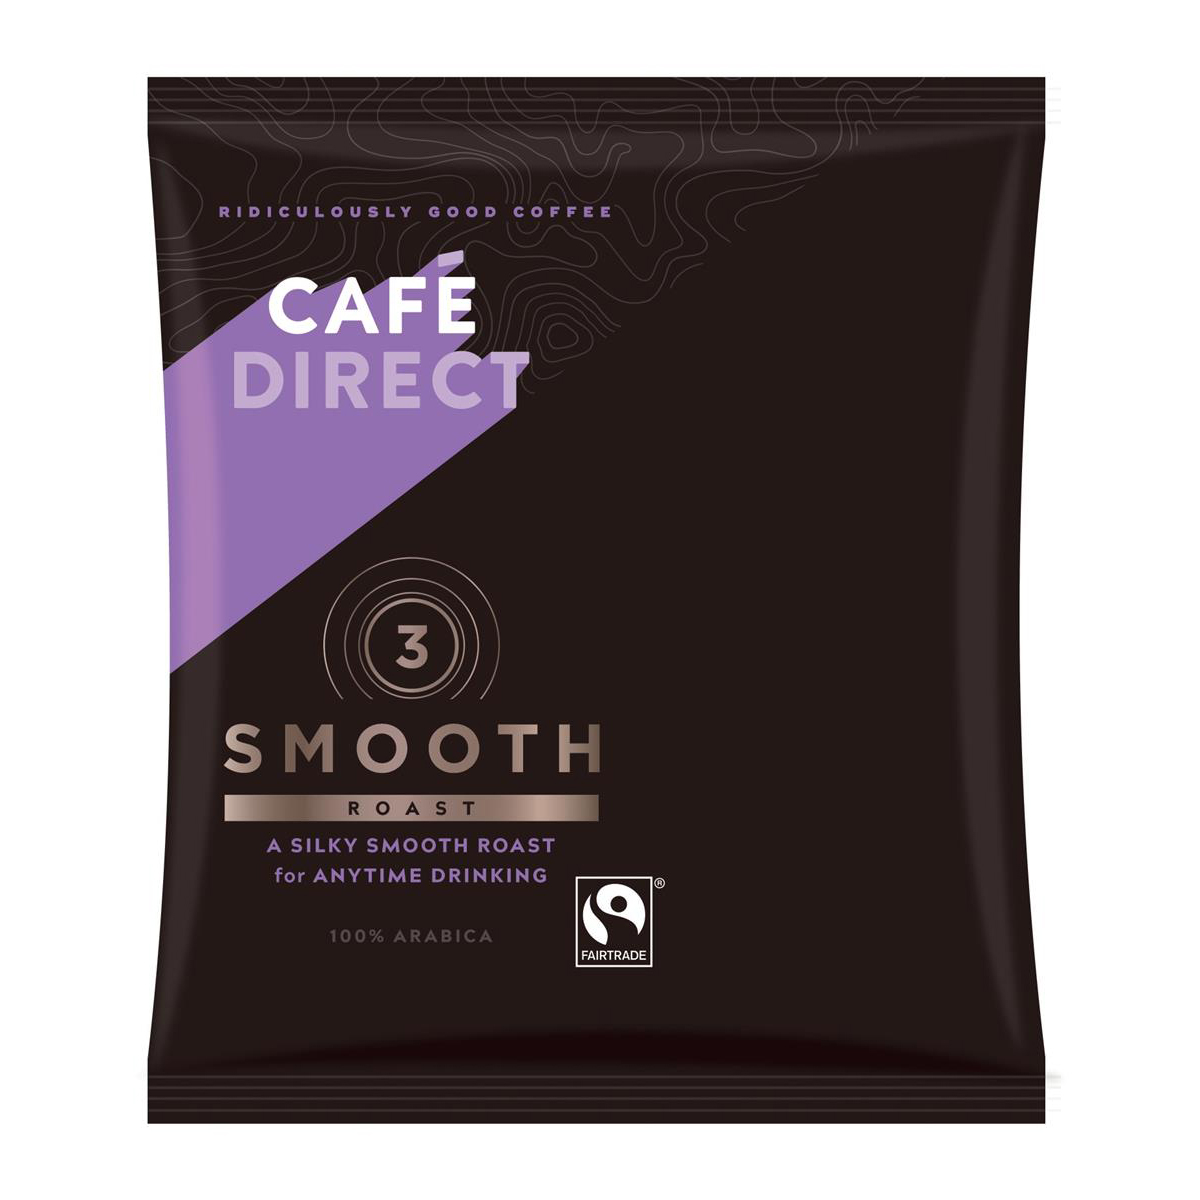 Coffee Cafe Direct Smooth Roast Filter Coffee 60g Sachet Ref FCR0008 Pack 45